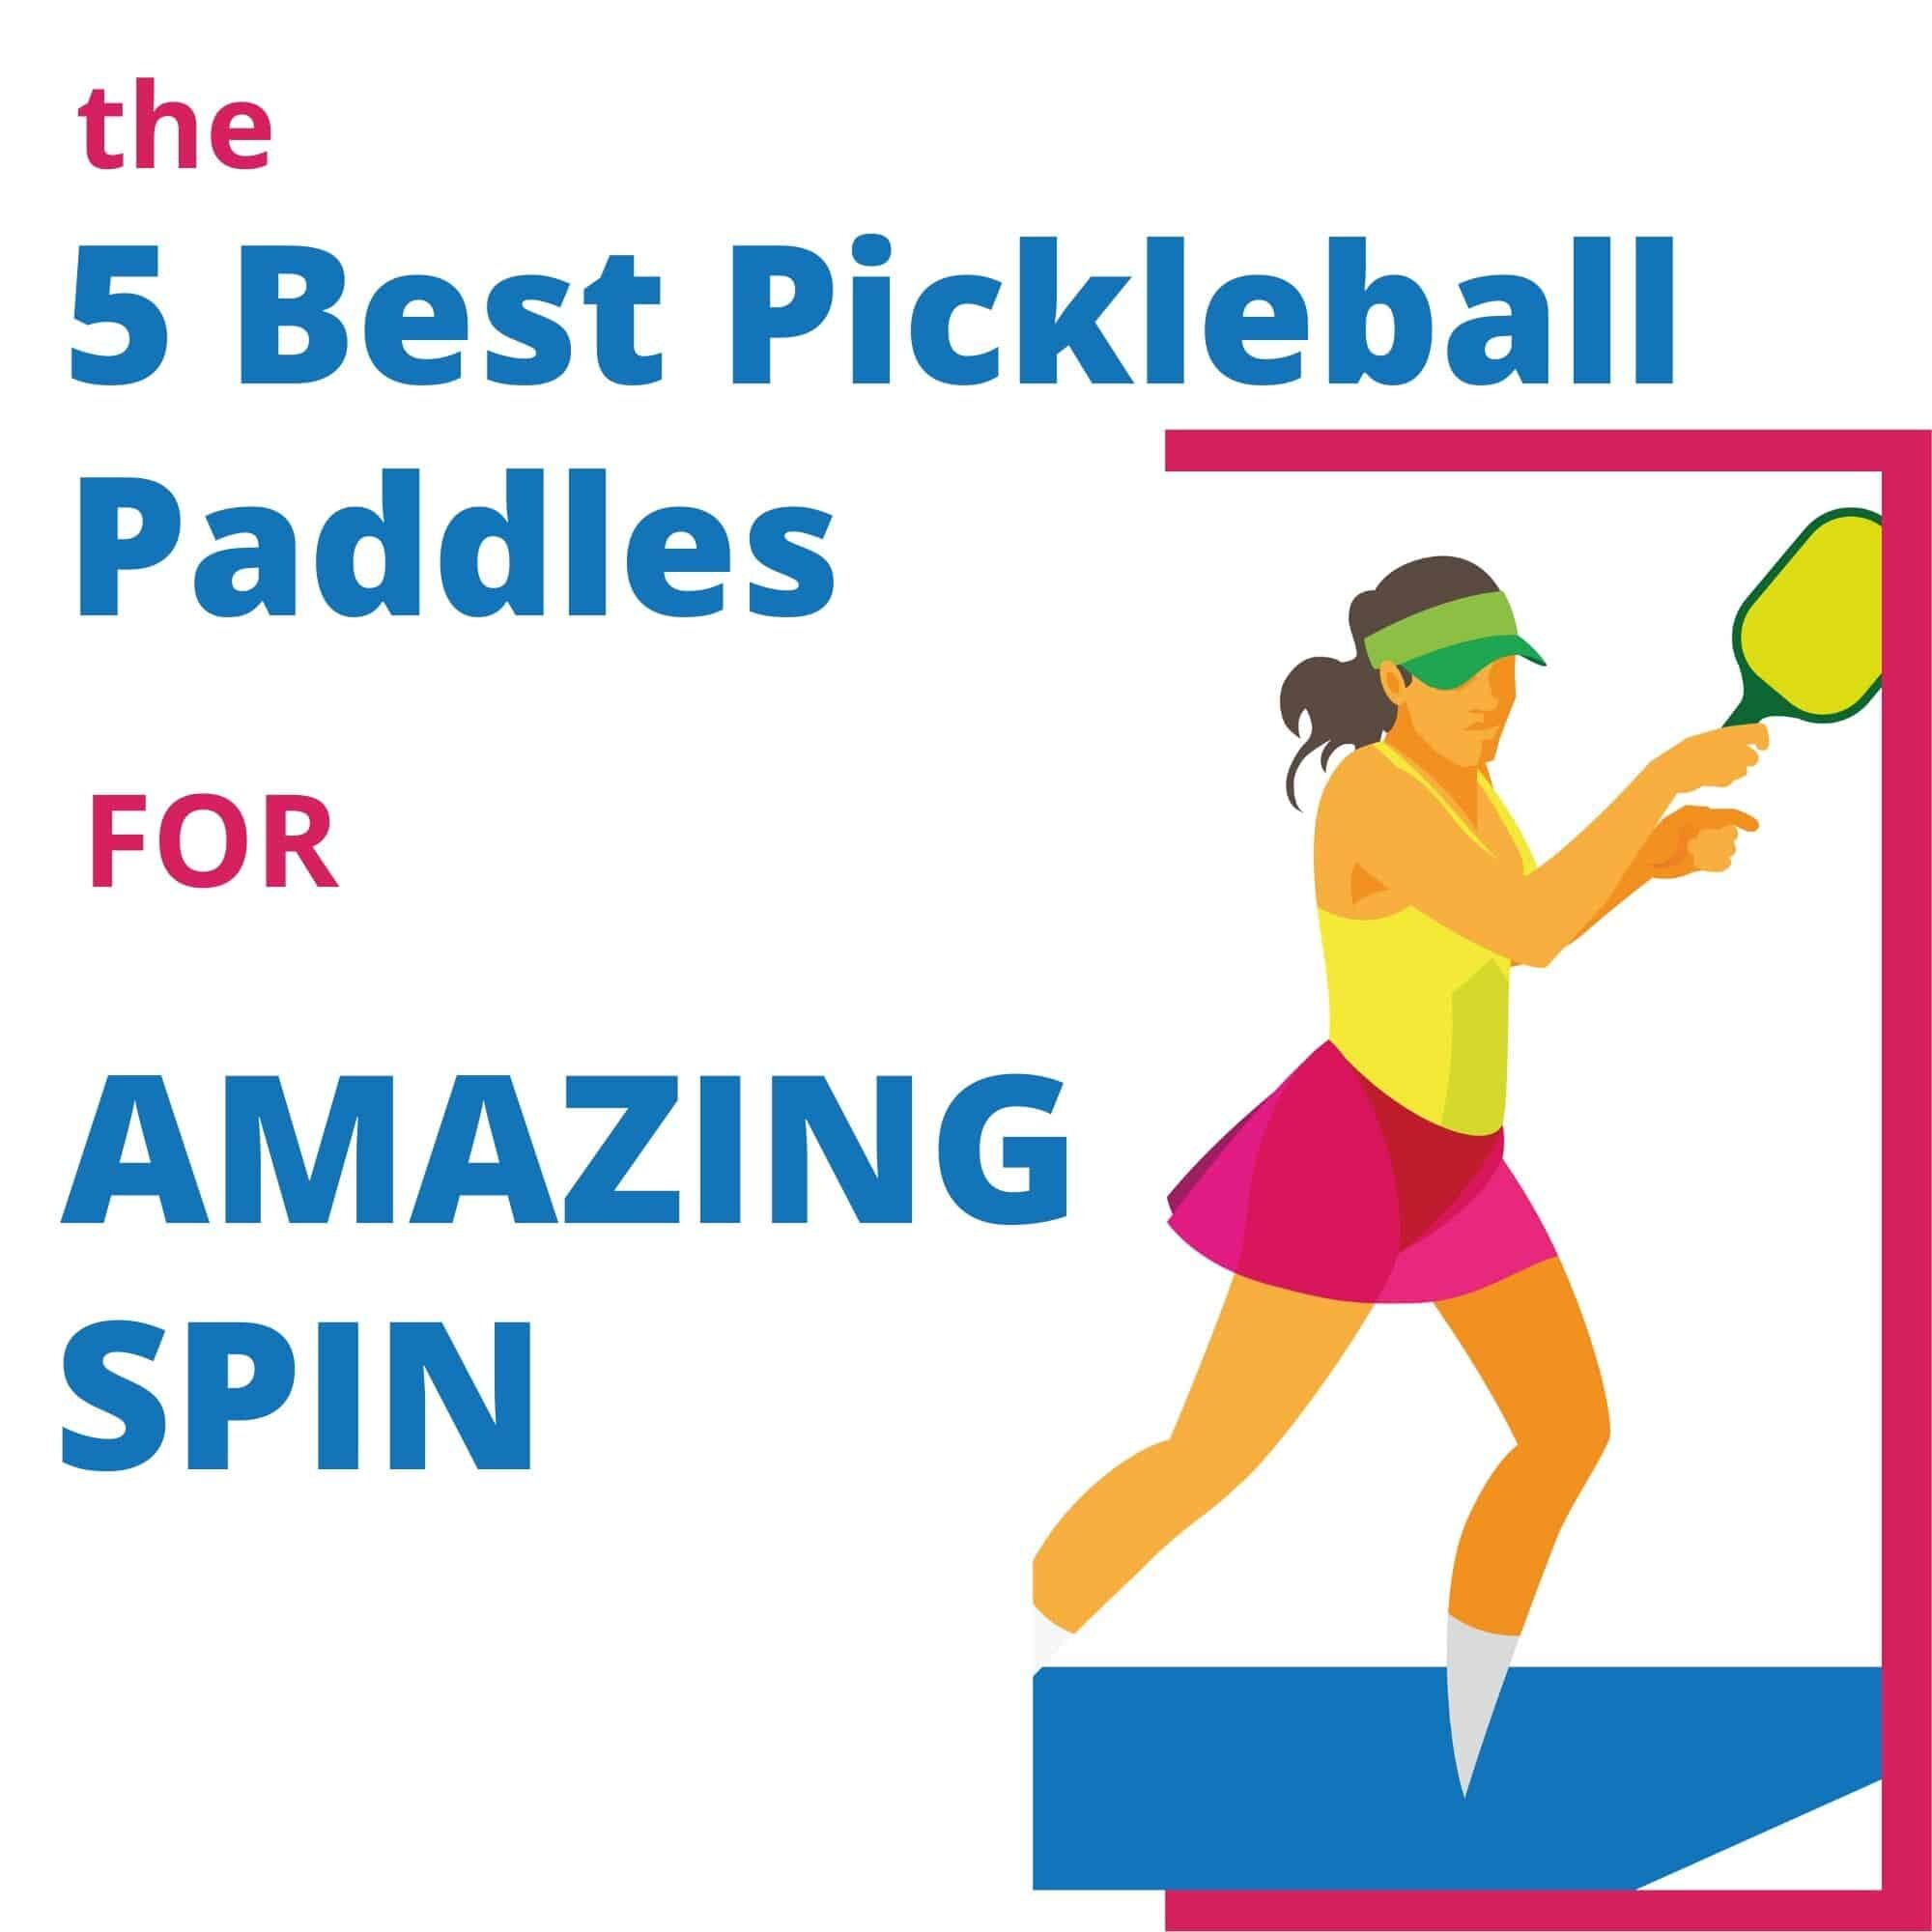 Pickleball Paddles For Spin